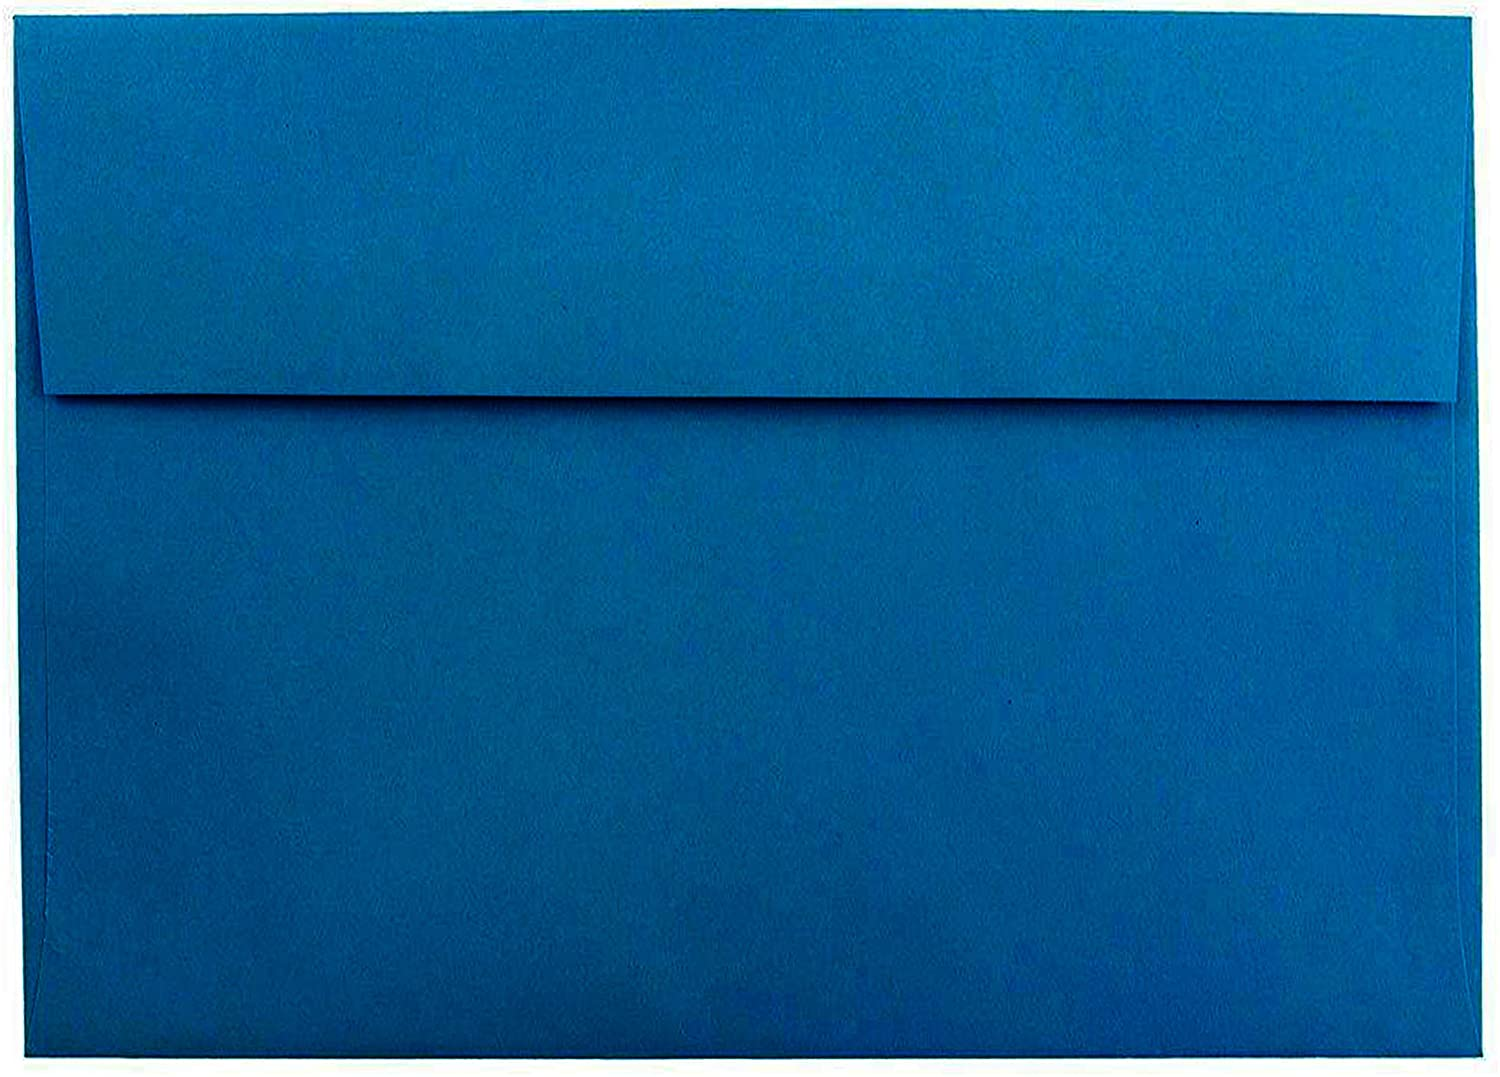 Shipped Free 100 Boxed Deep Royal Blue A7 Envelopes for 5 X 7 Greeting Cards Invitations Announcements from The Envelope Gallery